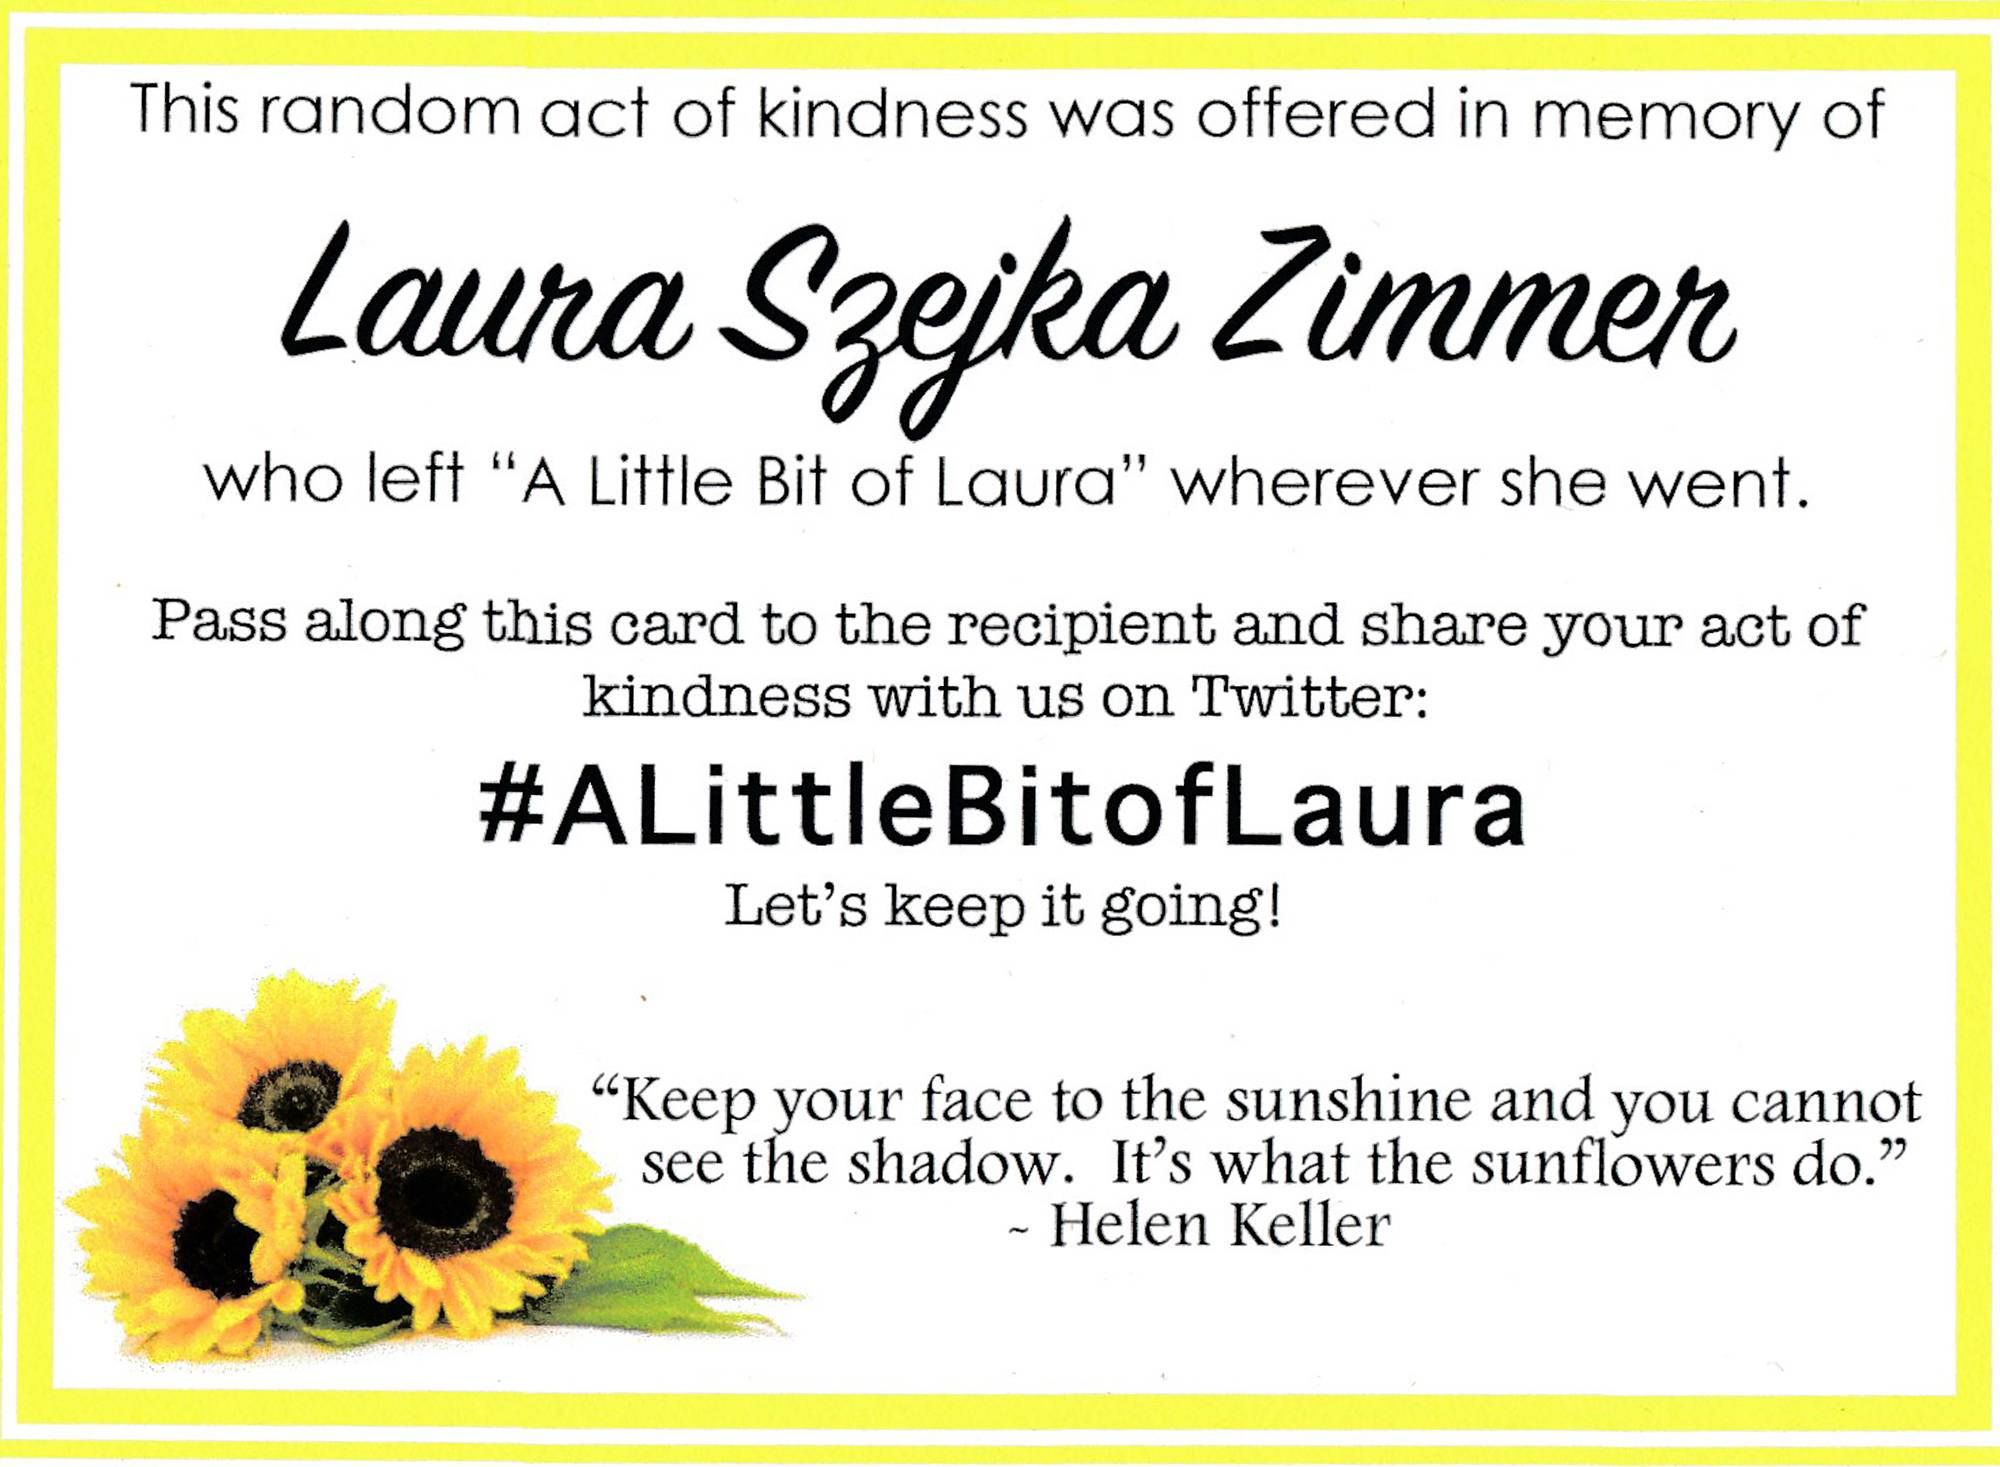 A post card to encourage people to pay it forward in honor of Laura Szejka Zimmer.